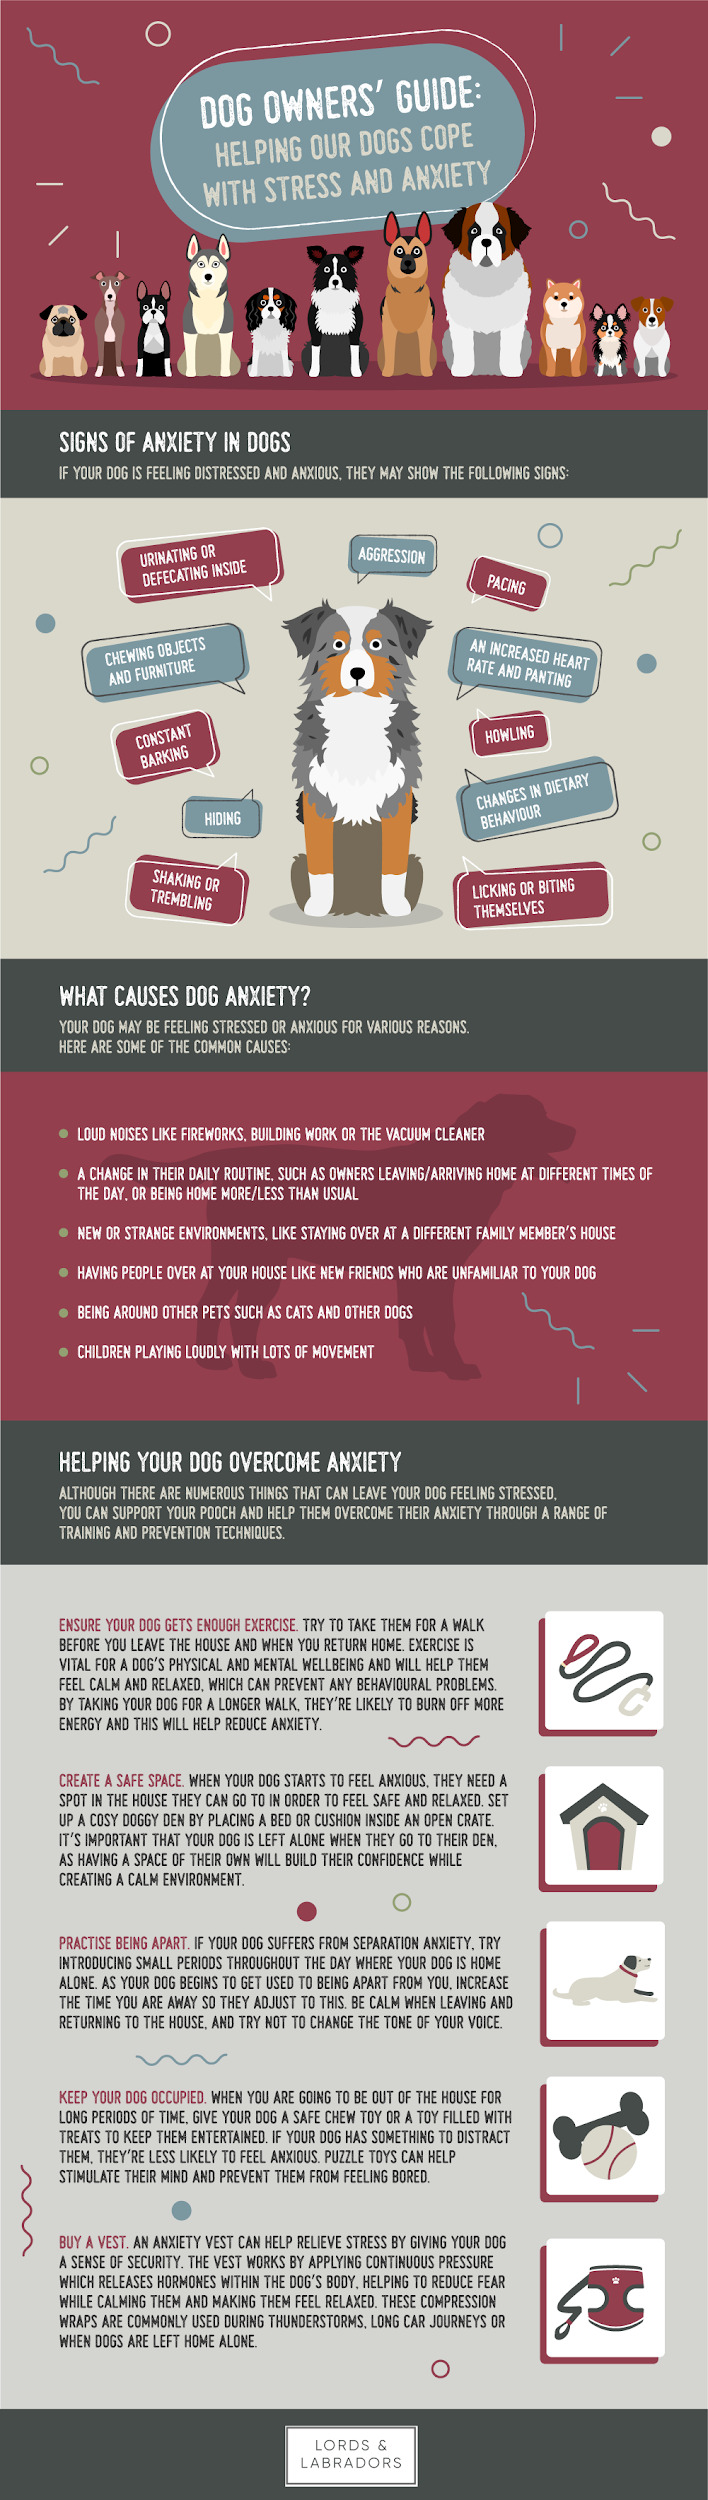 Dog Owners' Guide - Helping Our Dogs Cope with Stress and Anxiety Infographic